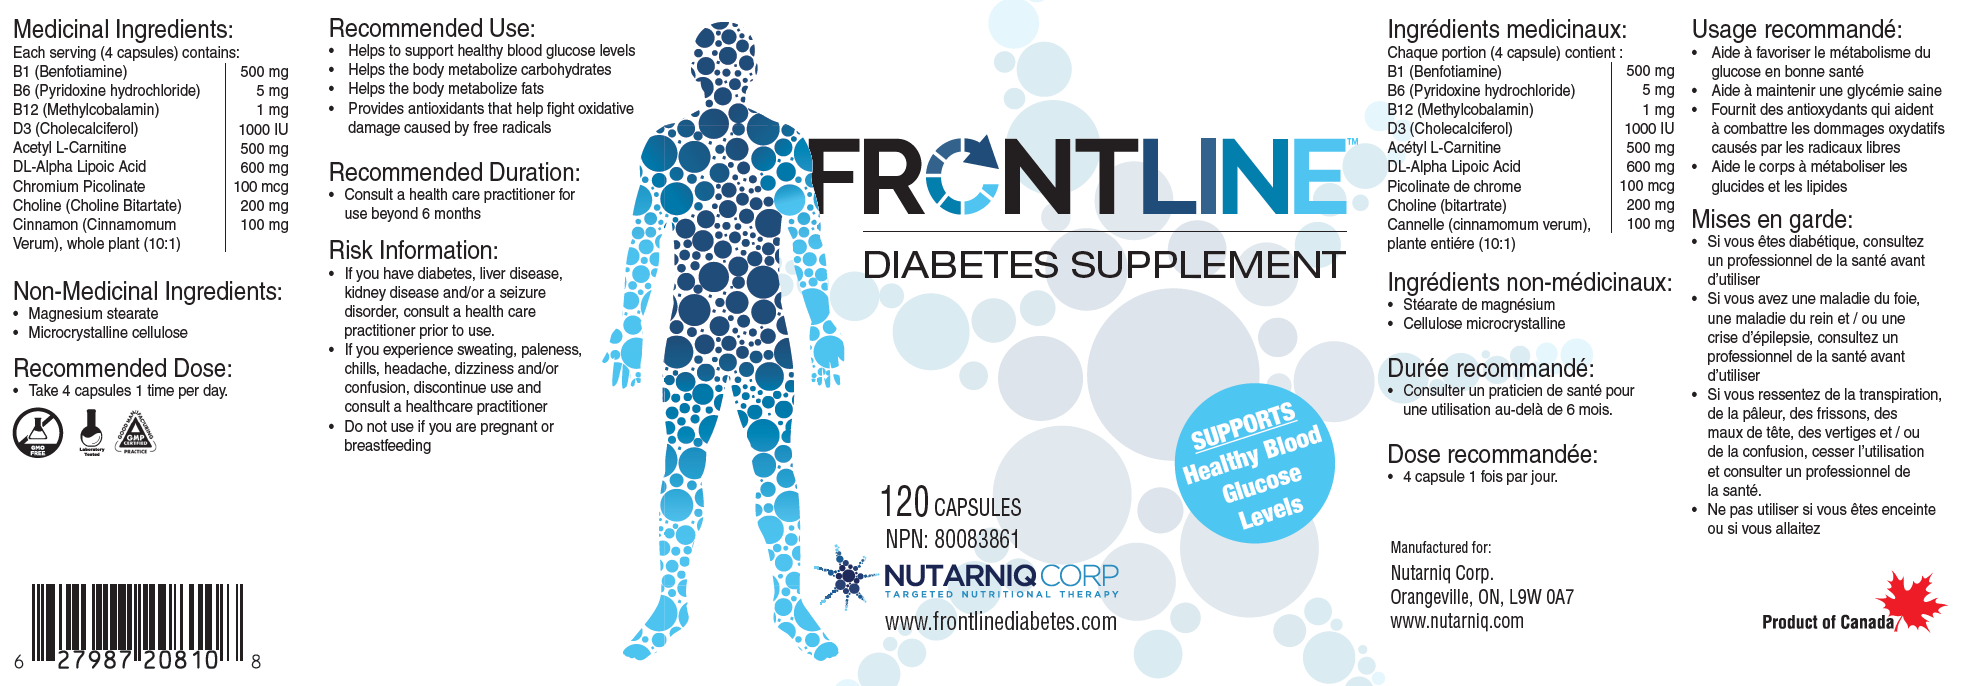 Frontline Diabetes Label